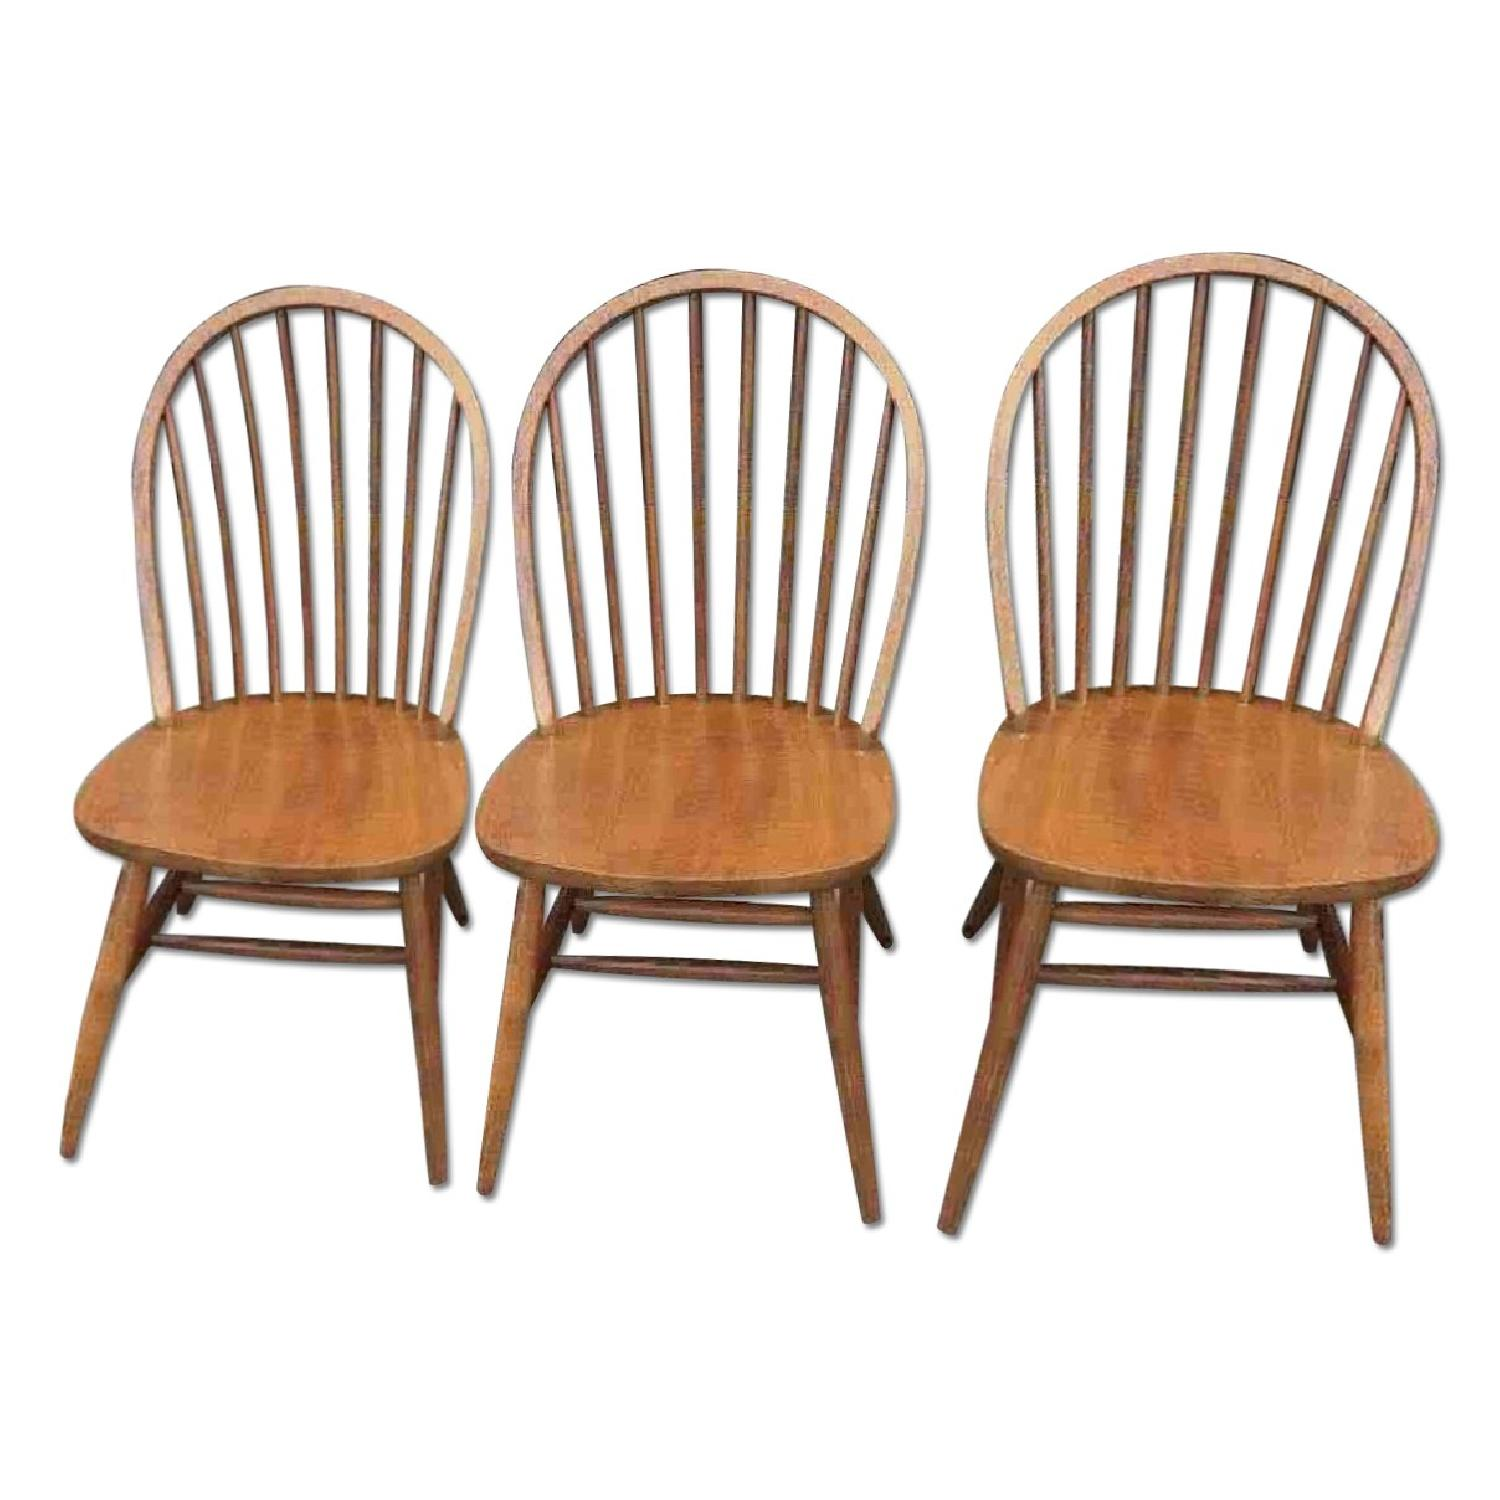 Solid Wood Dining Chairs - image-0